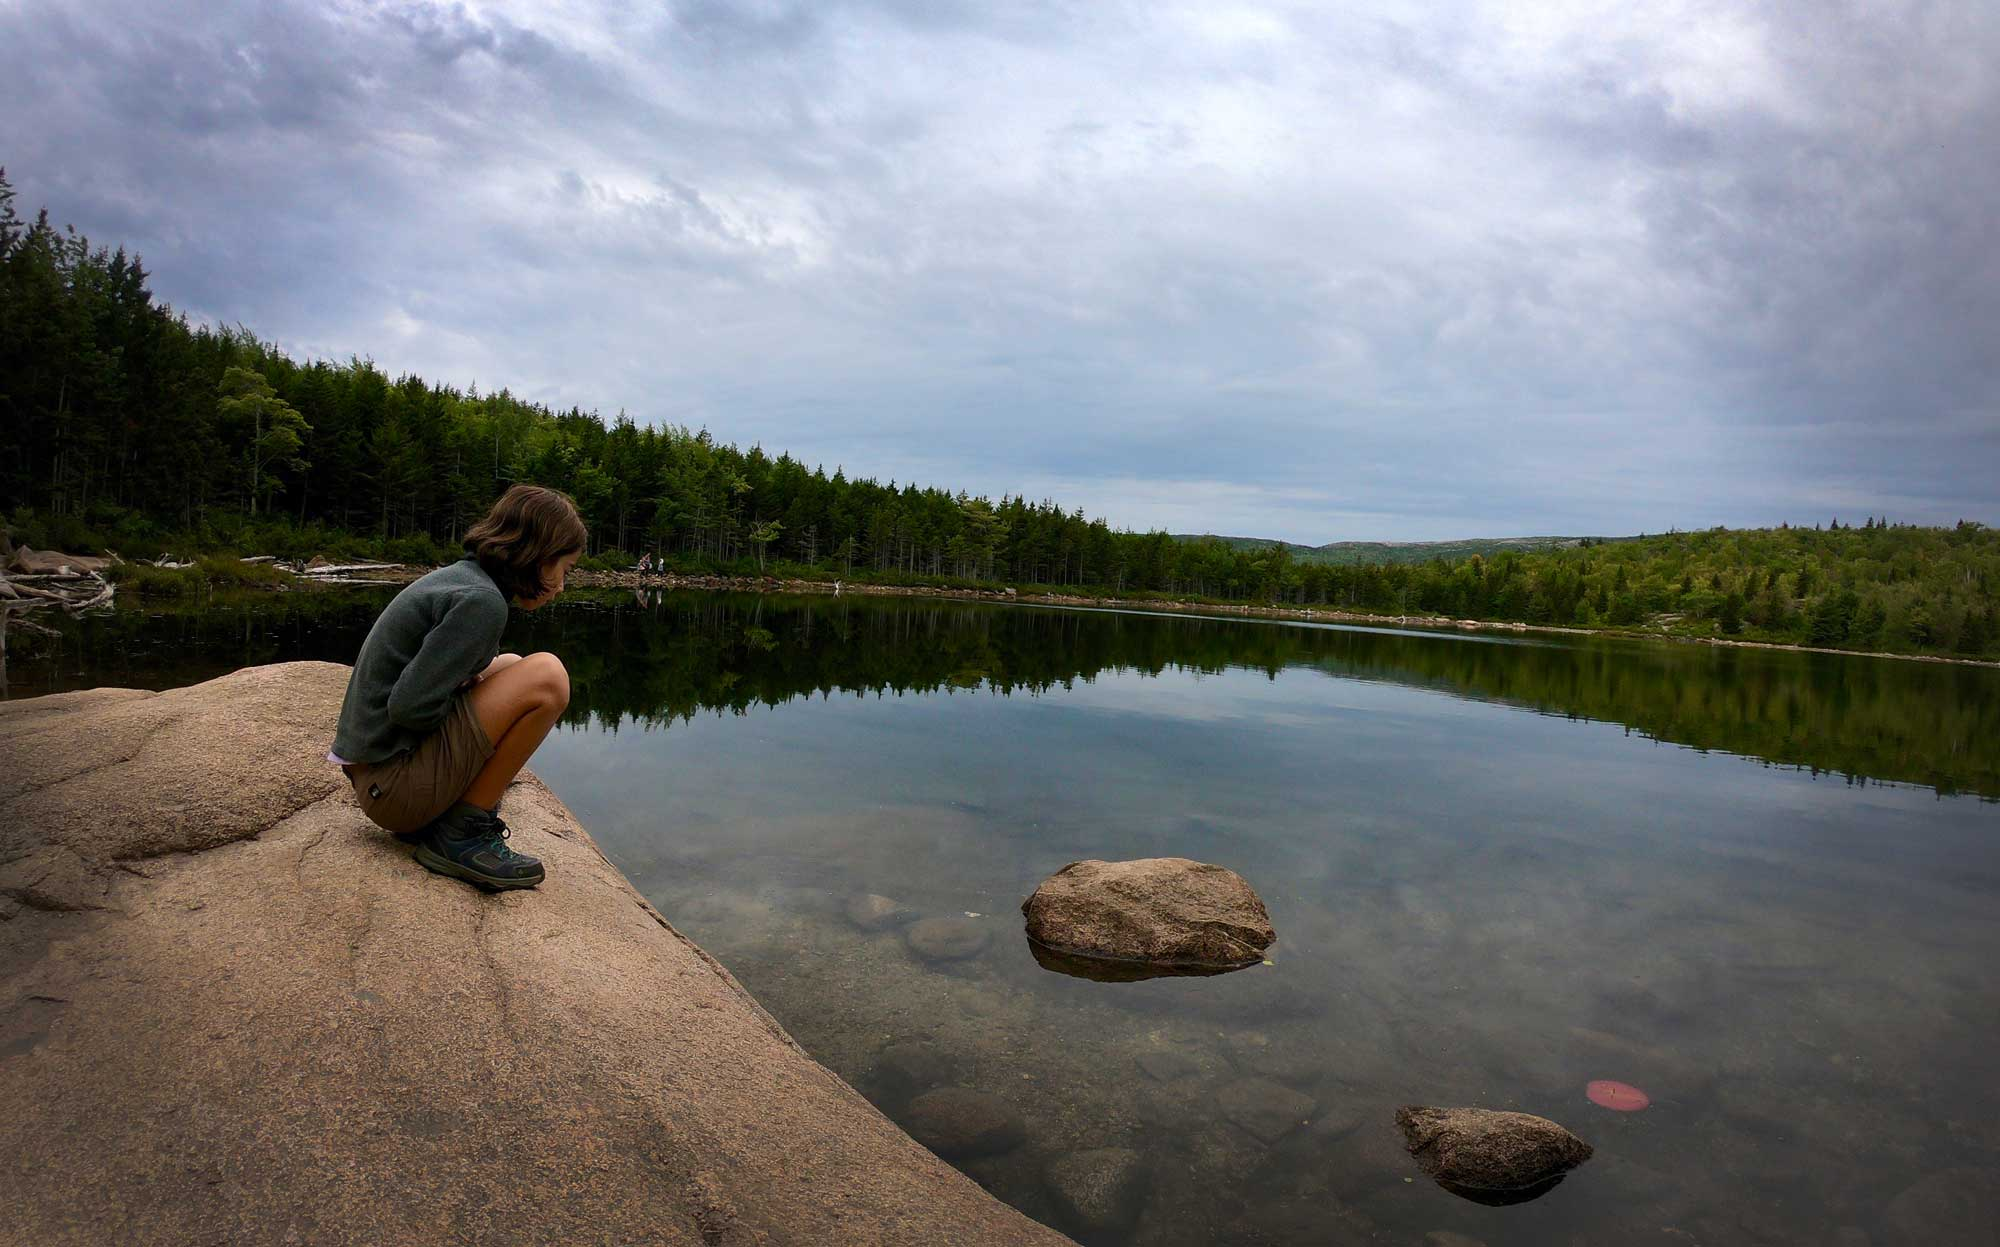 Teen looking into the clear lake water after hiking the Beehive Trail, Acadia National Park, Maine